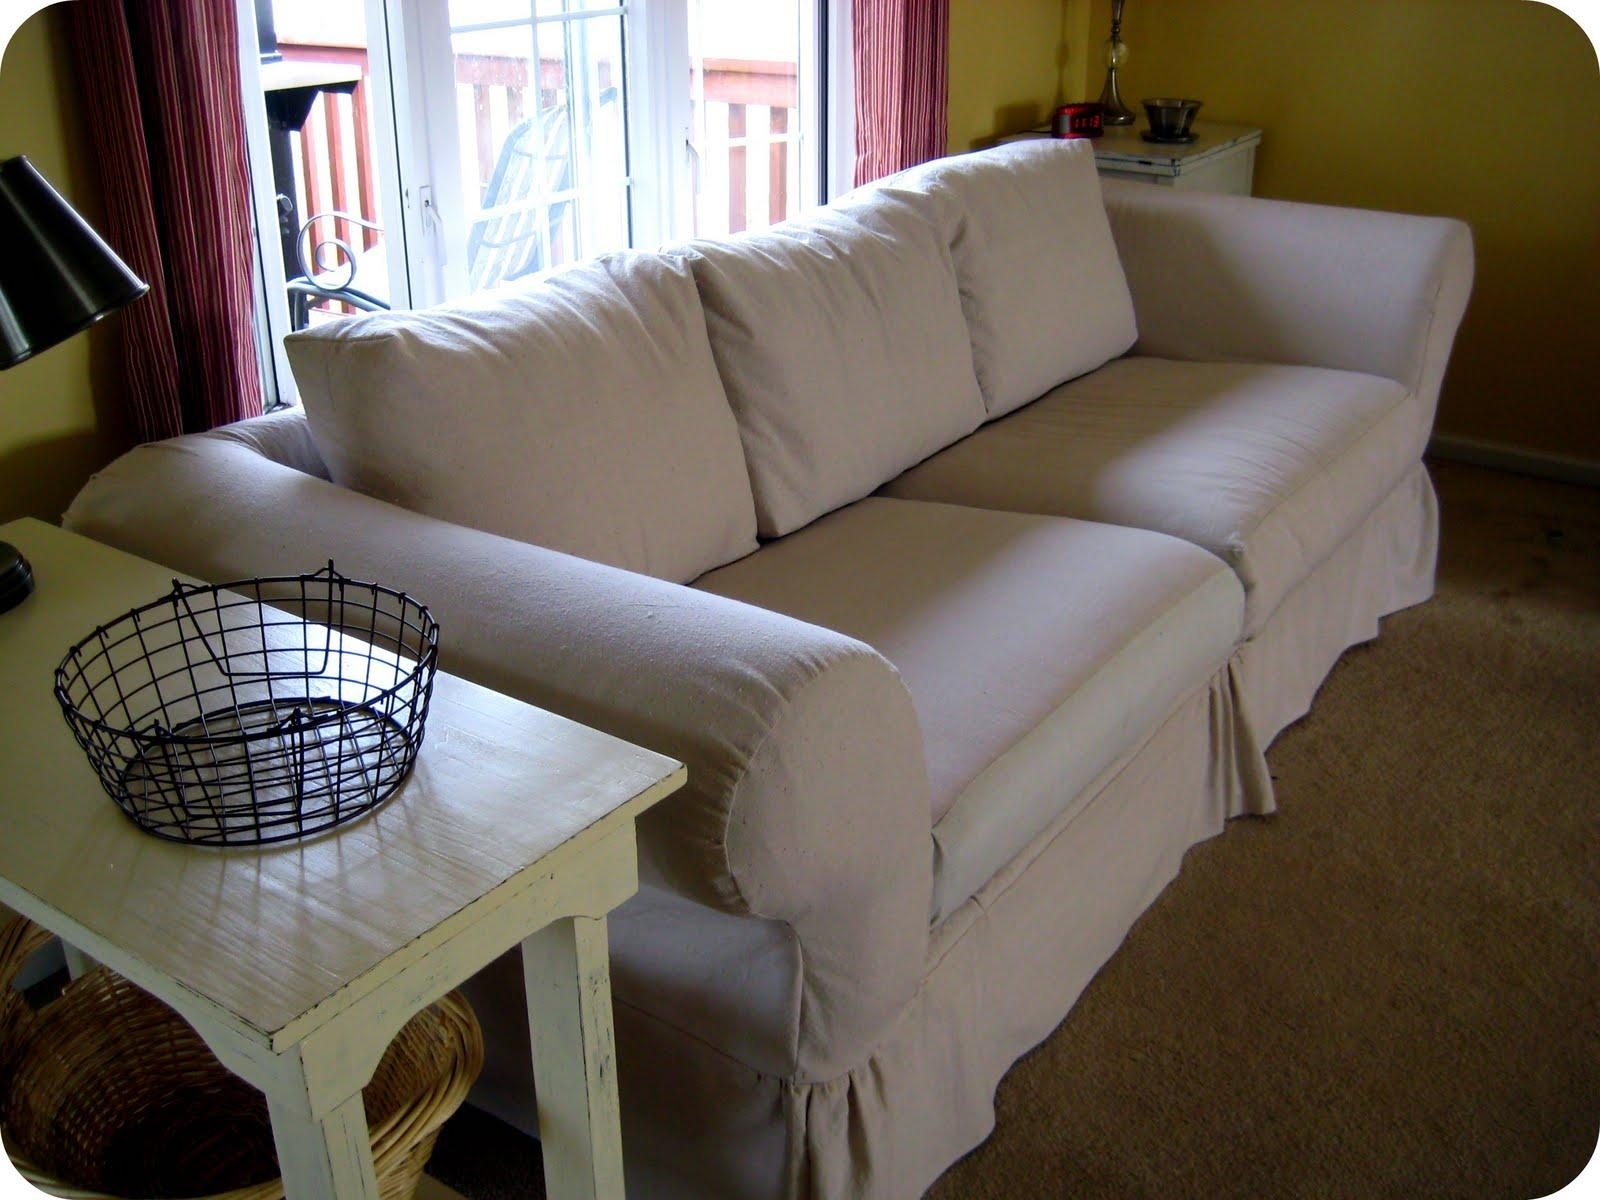 Canvas Sofa Slipcovers | Sofa Gallery | Kengire In Canvas Sofa Slipcovers (View 5 of 20)